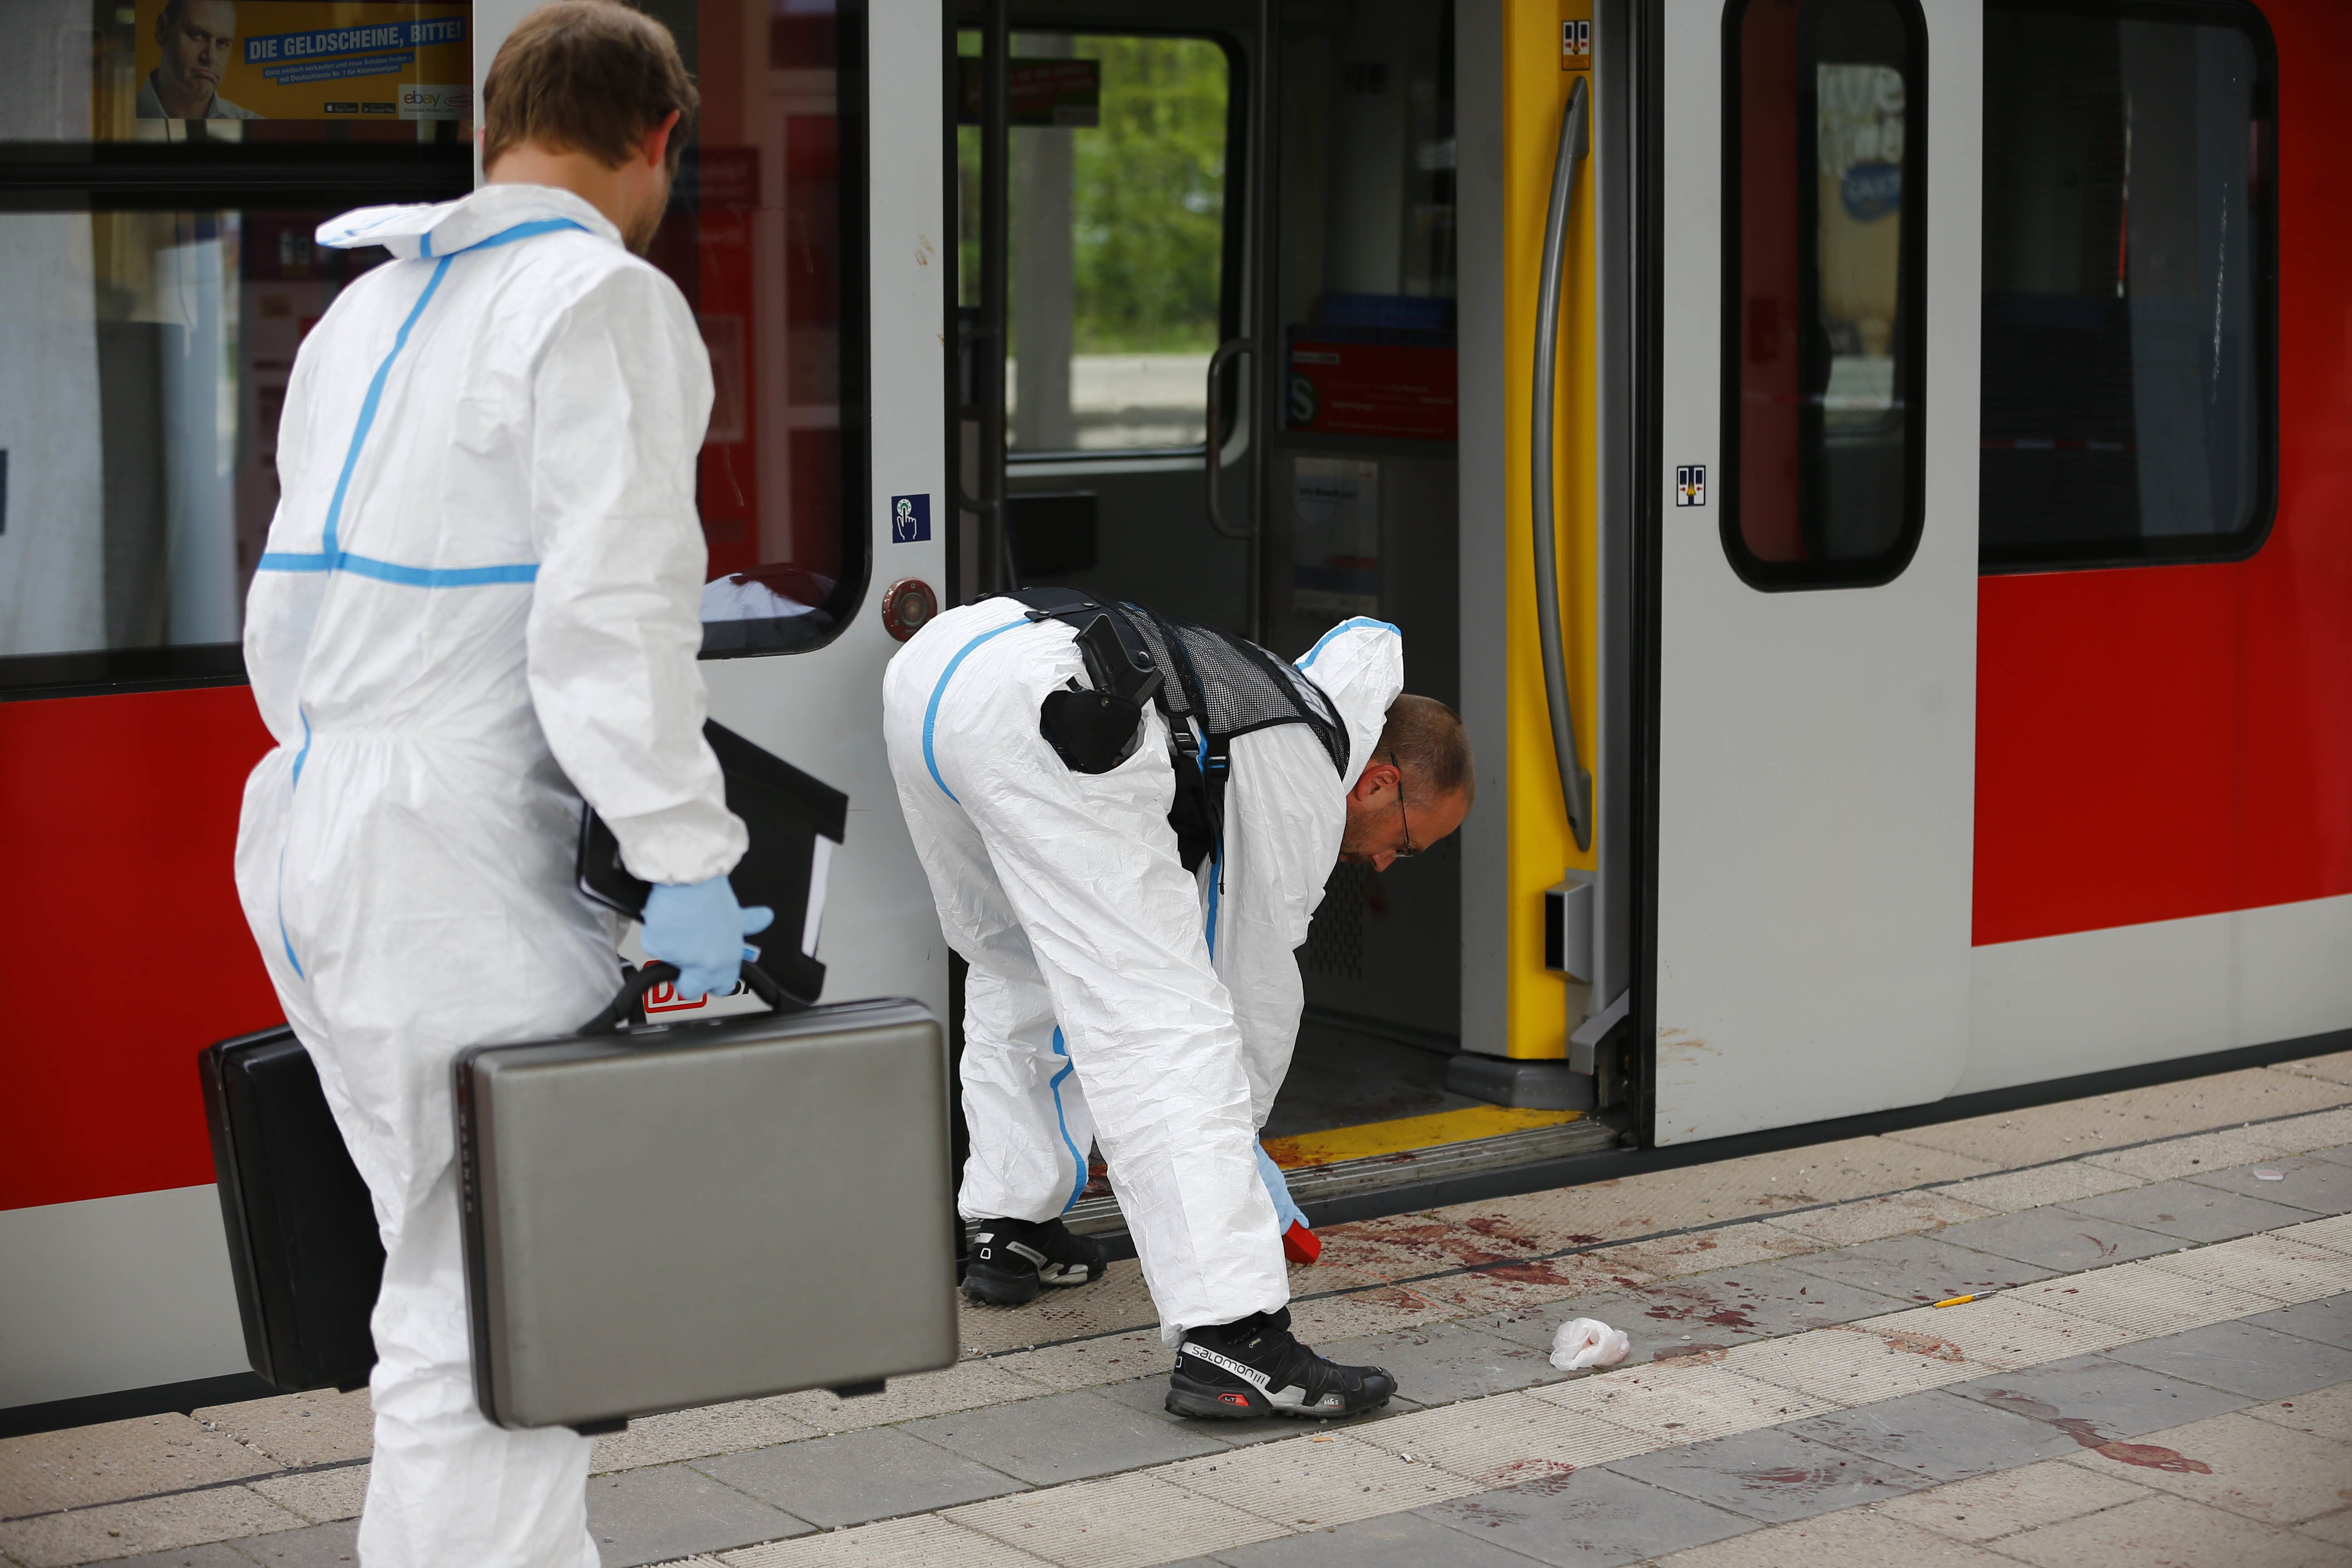 One Dead And Three Injured In Stabbing At Munich Train